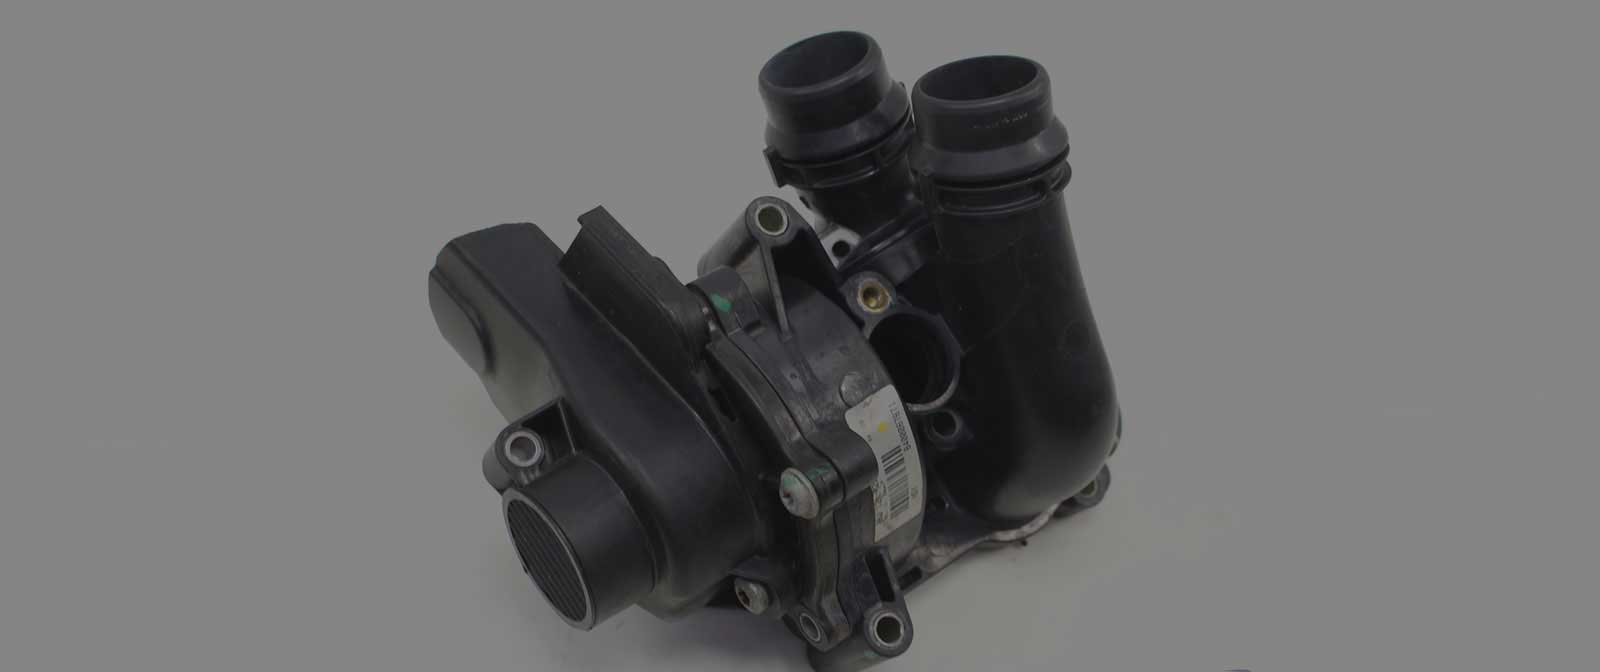 Audi water pump for sale